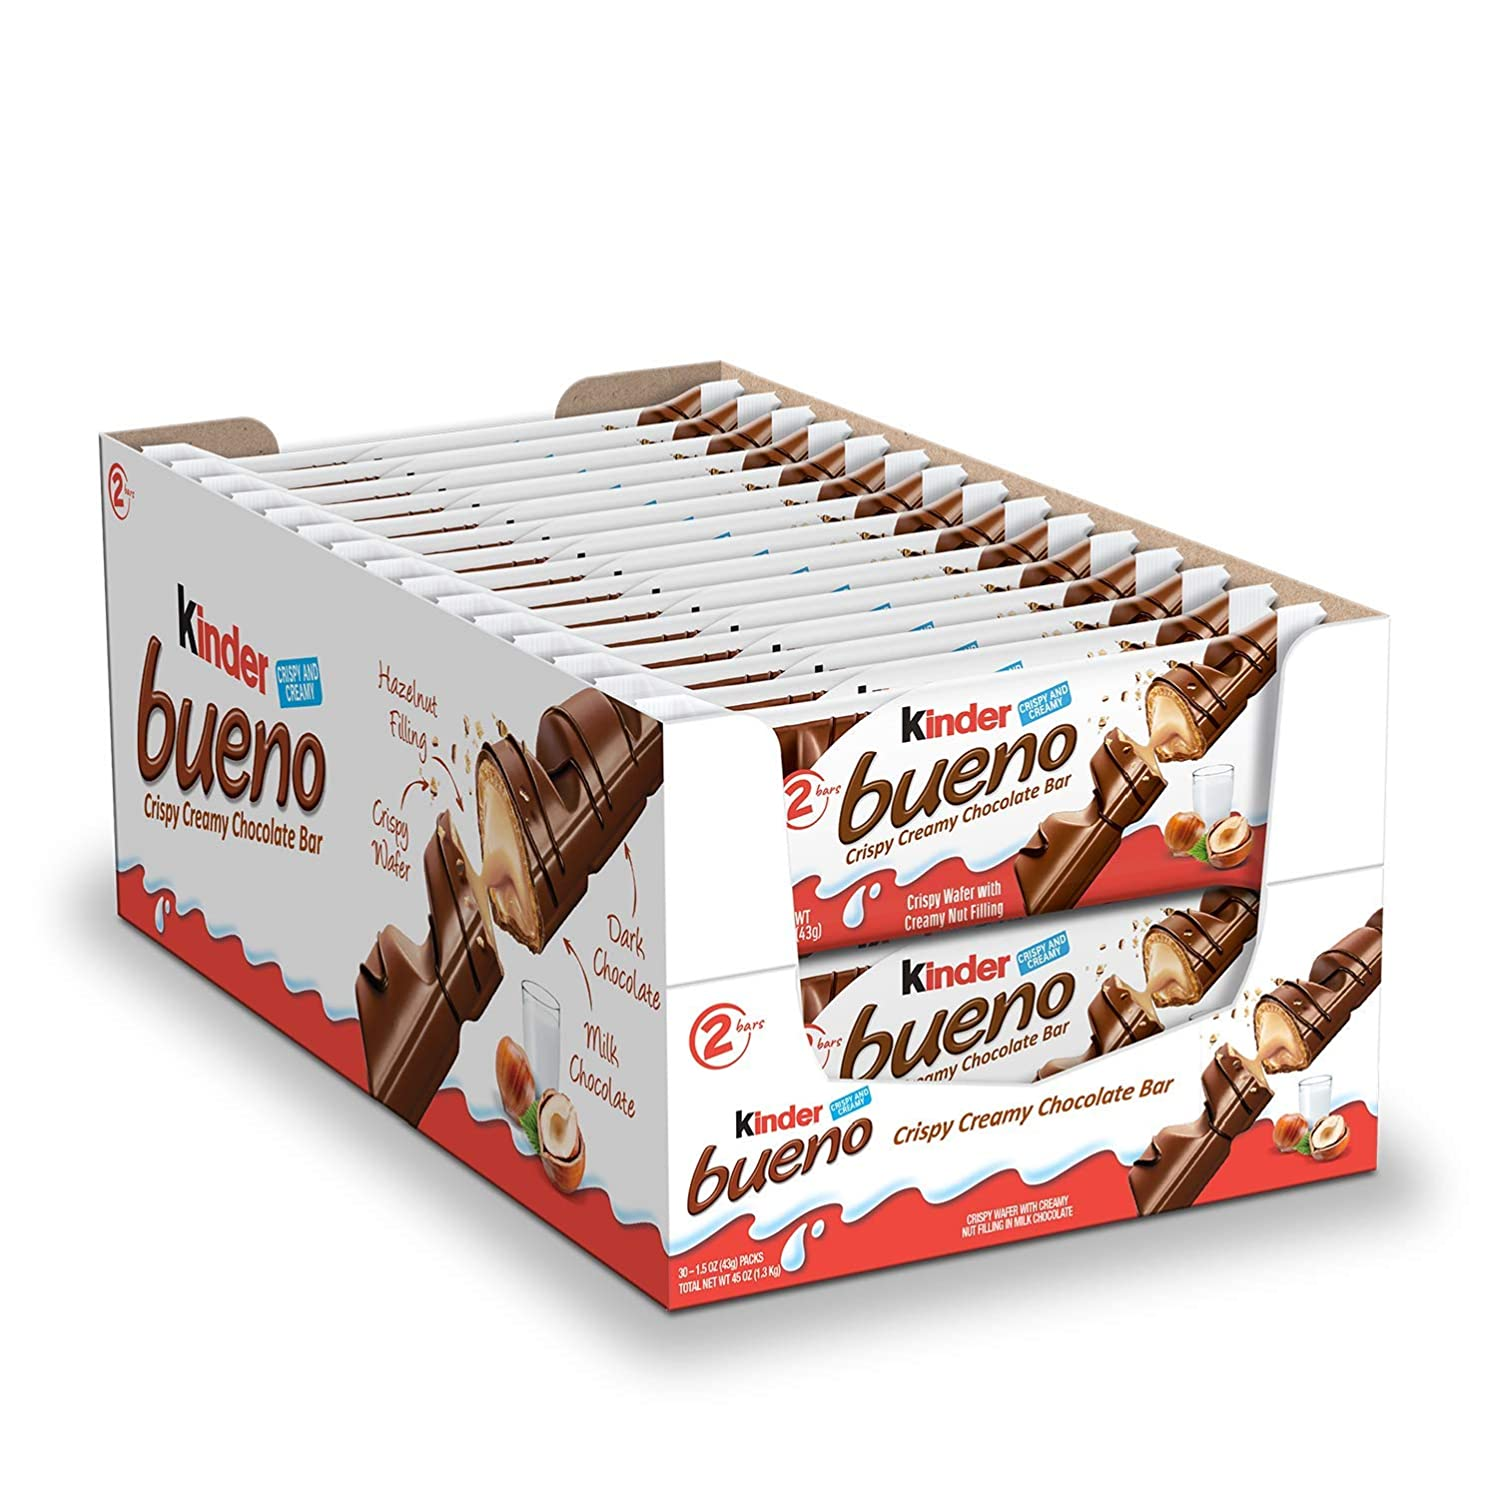 Kinder Bueno Milk Chocolate and Hazelnut Cream Candy Bar, 30 Packs, 2 Individually Wrapped 1.5 Oz Bars Per Pack